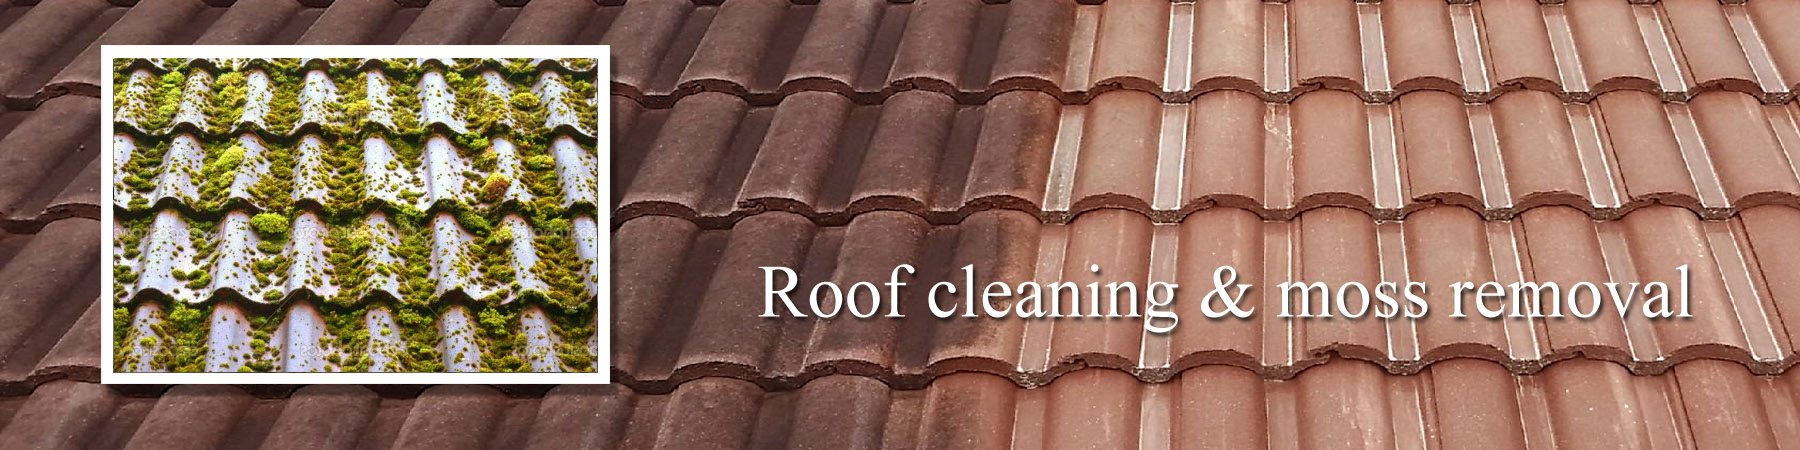 J.R. Roof Cleaning East Grinstead roof moss removal repairs & coating J R Cleaning